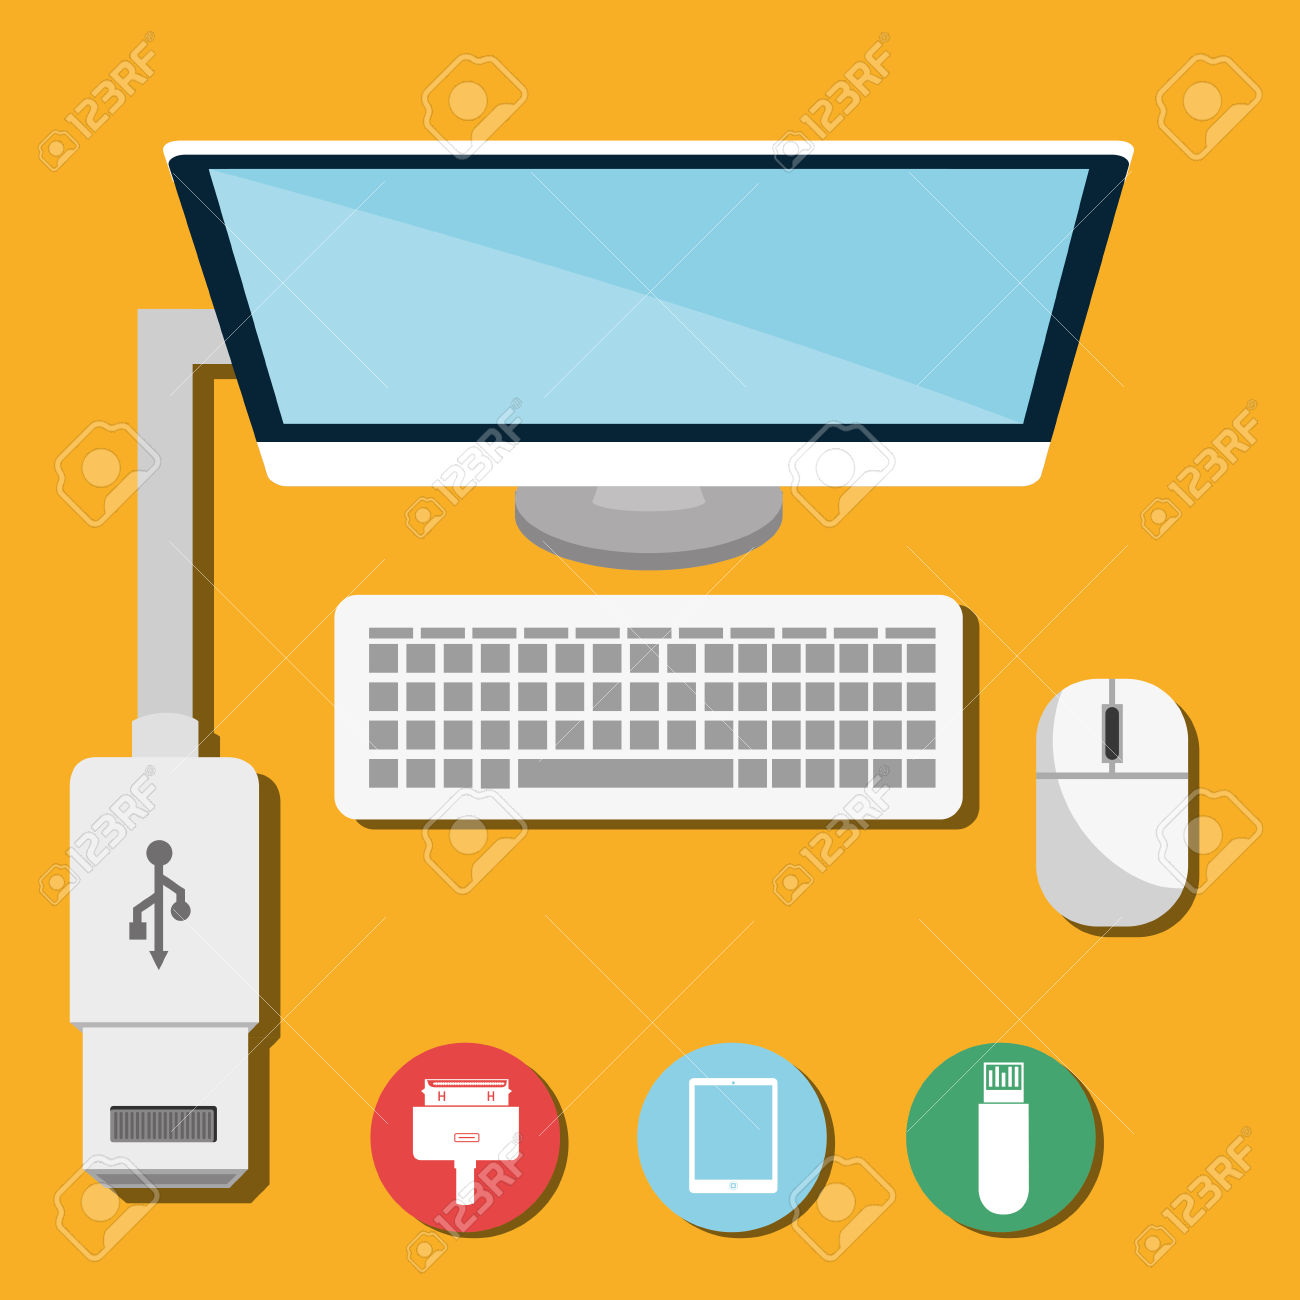 USB Portable Memory Or Cable Graphic Design, Vector Illustration.